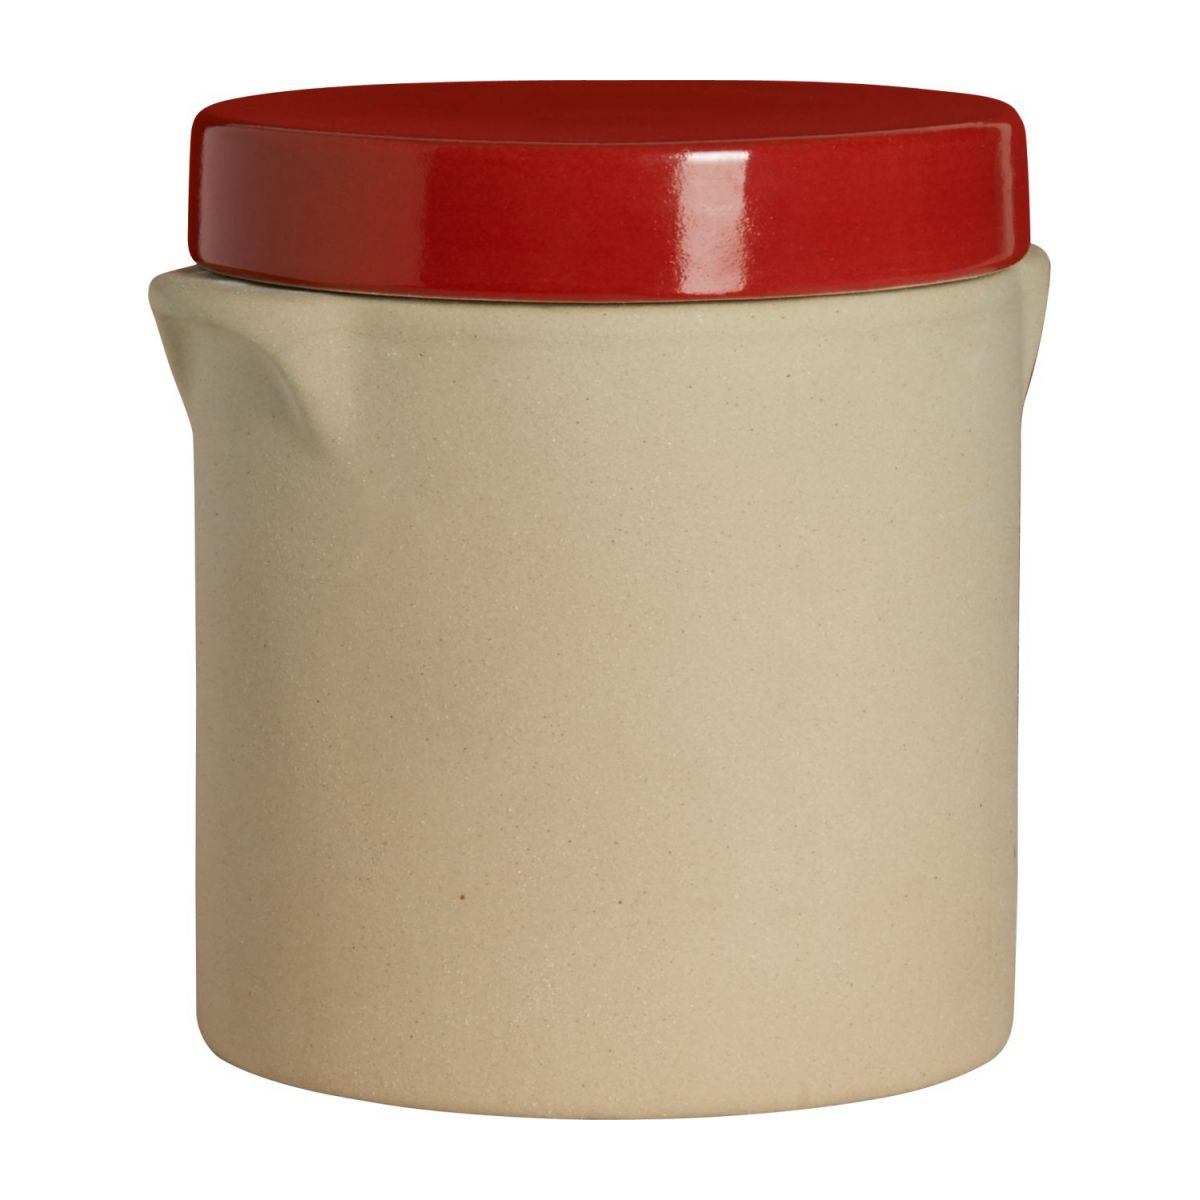 Box made in sandstone - 0,5L, natural and red n°1